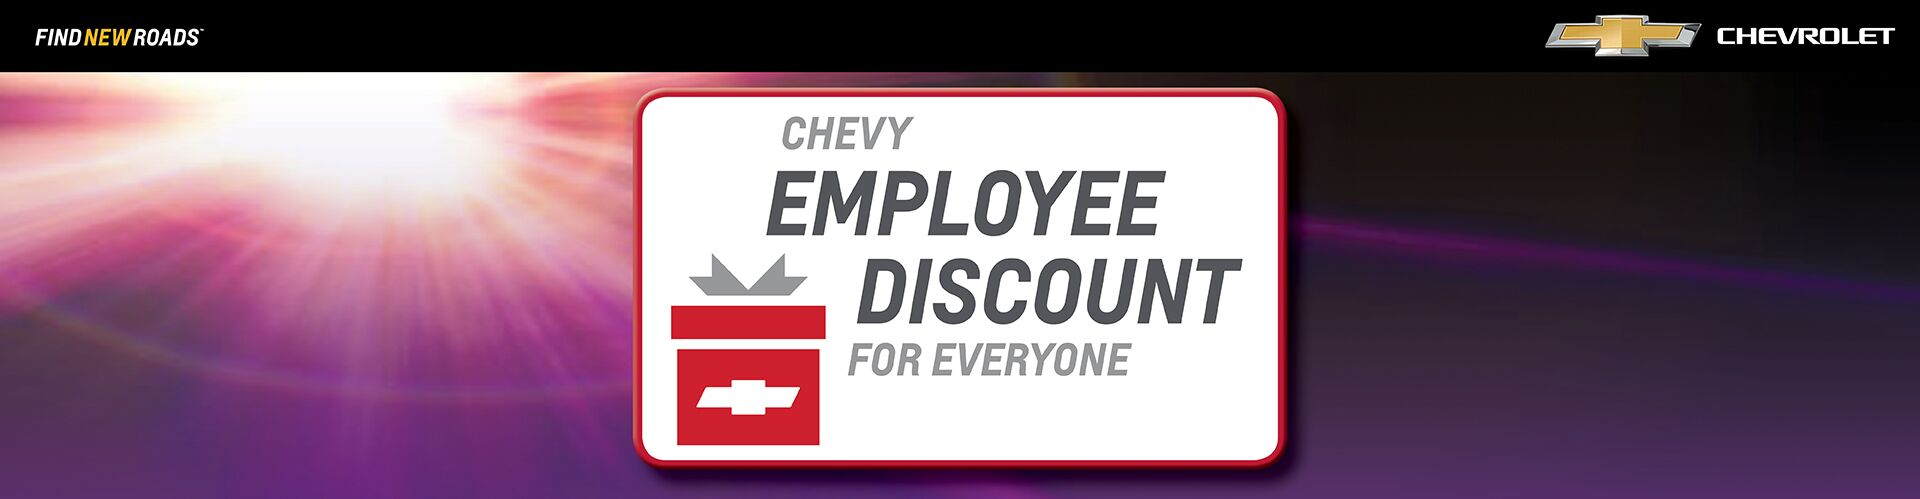 Chevrolet - Employee Pricing For Everyone!